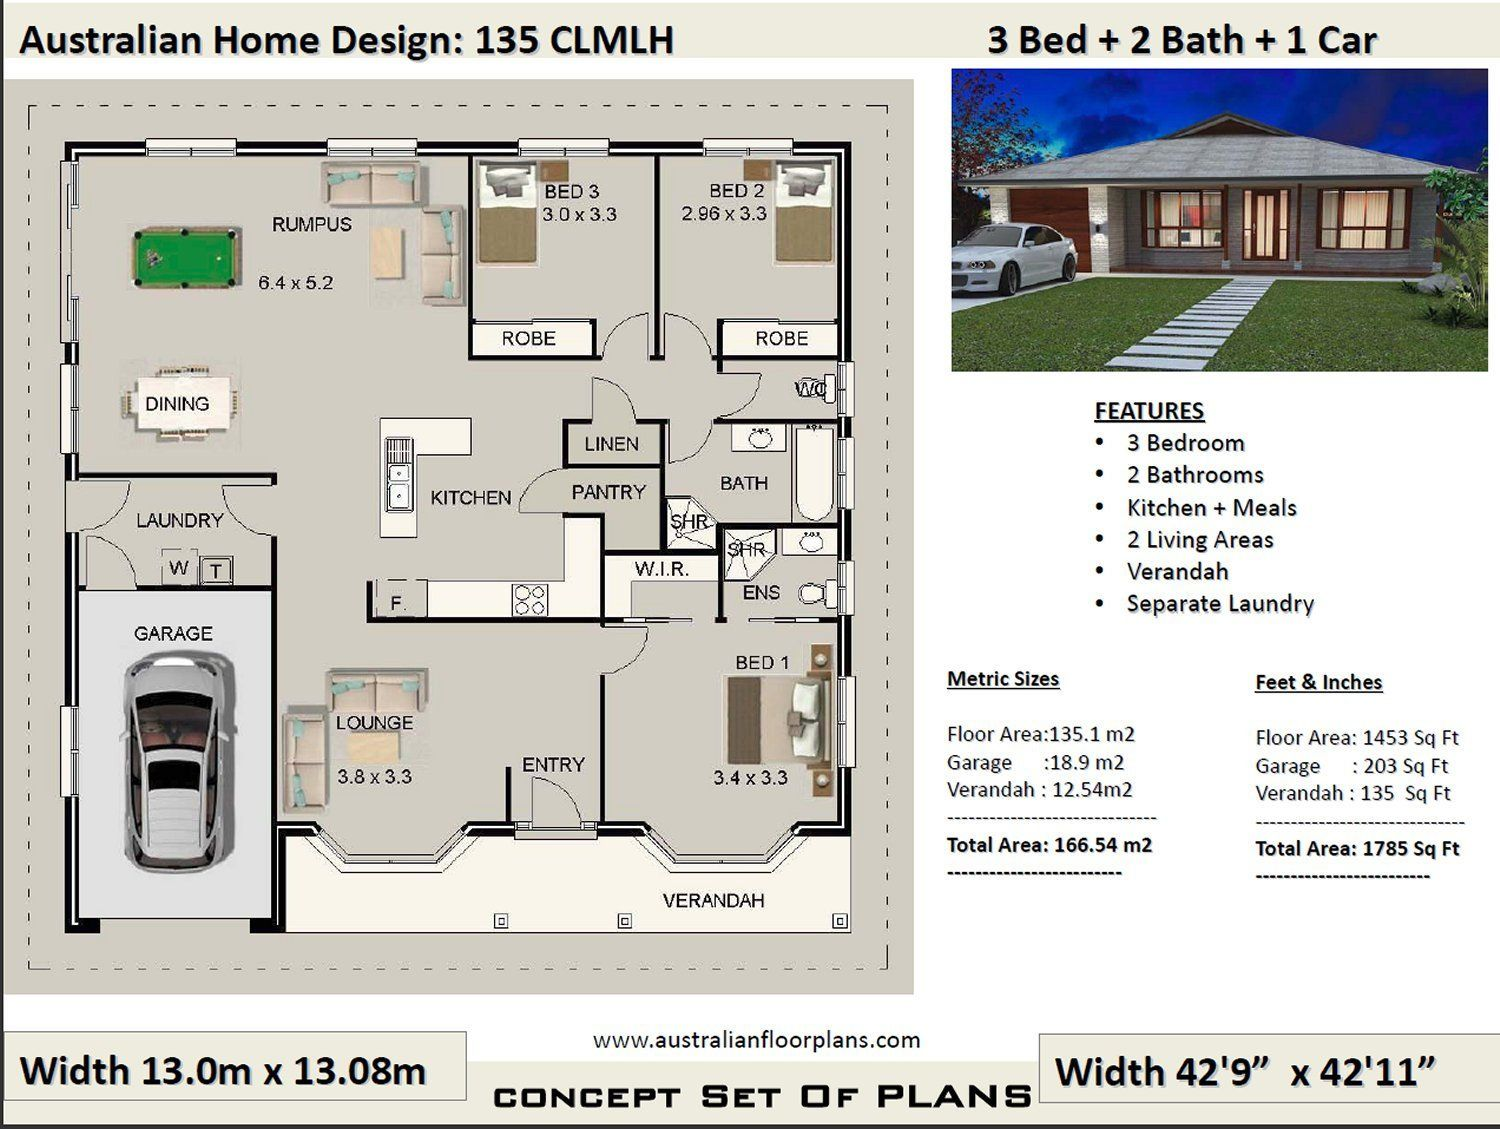 Country Style 3 Bedroom Plans 166m2 1785 Sq Ft 3 Bedroom